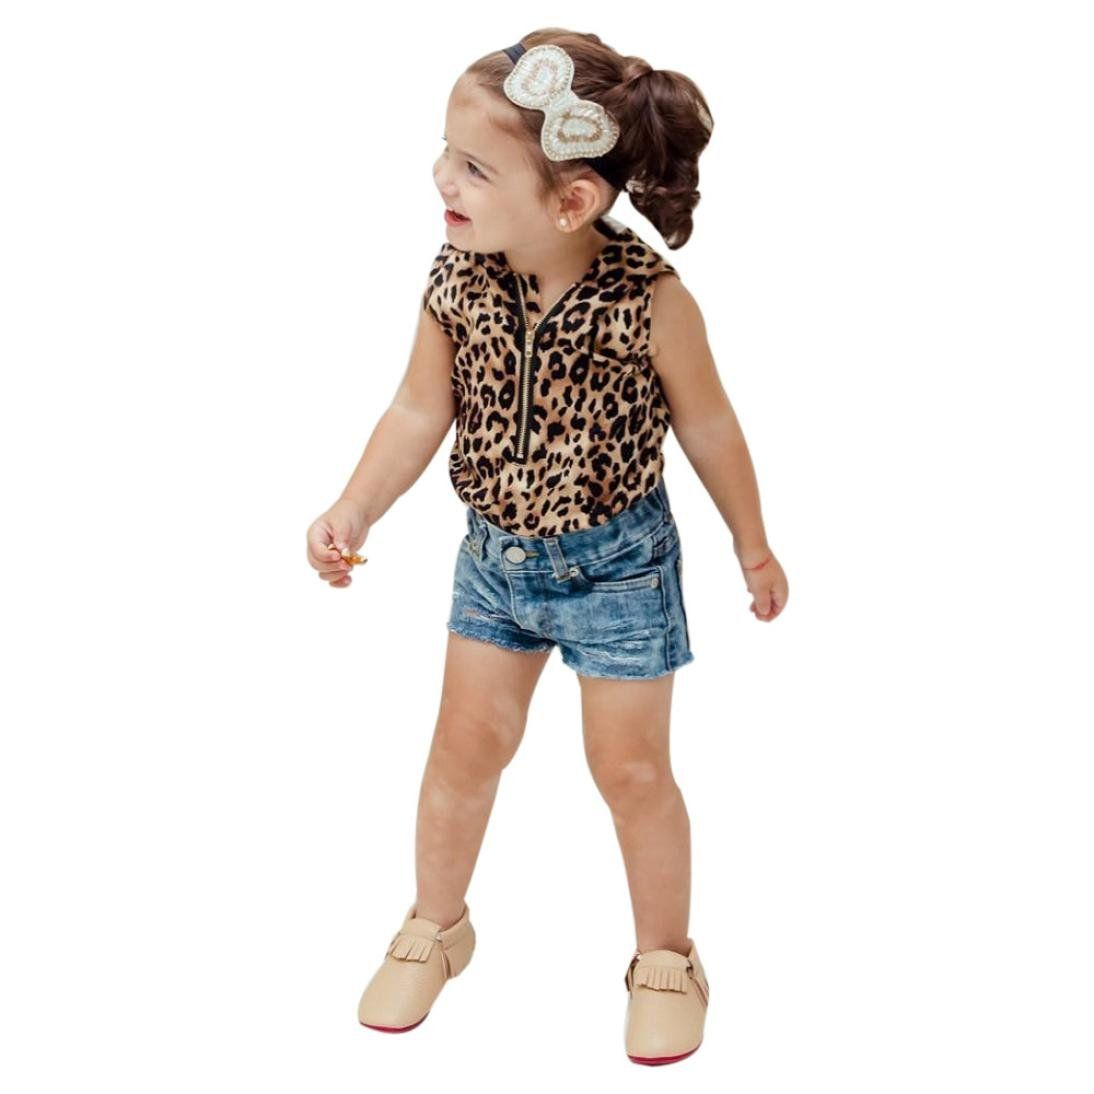 b325c35b8294 Little Girl Hooded Leopard Print T Shirt Top Shorts Pants Clothes Set  (5Years, multicolor